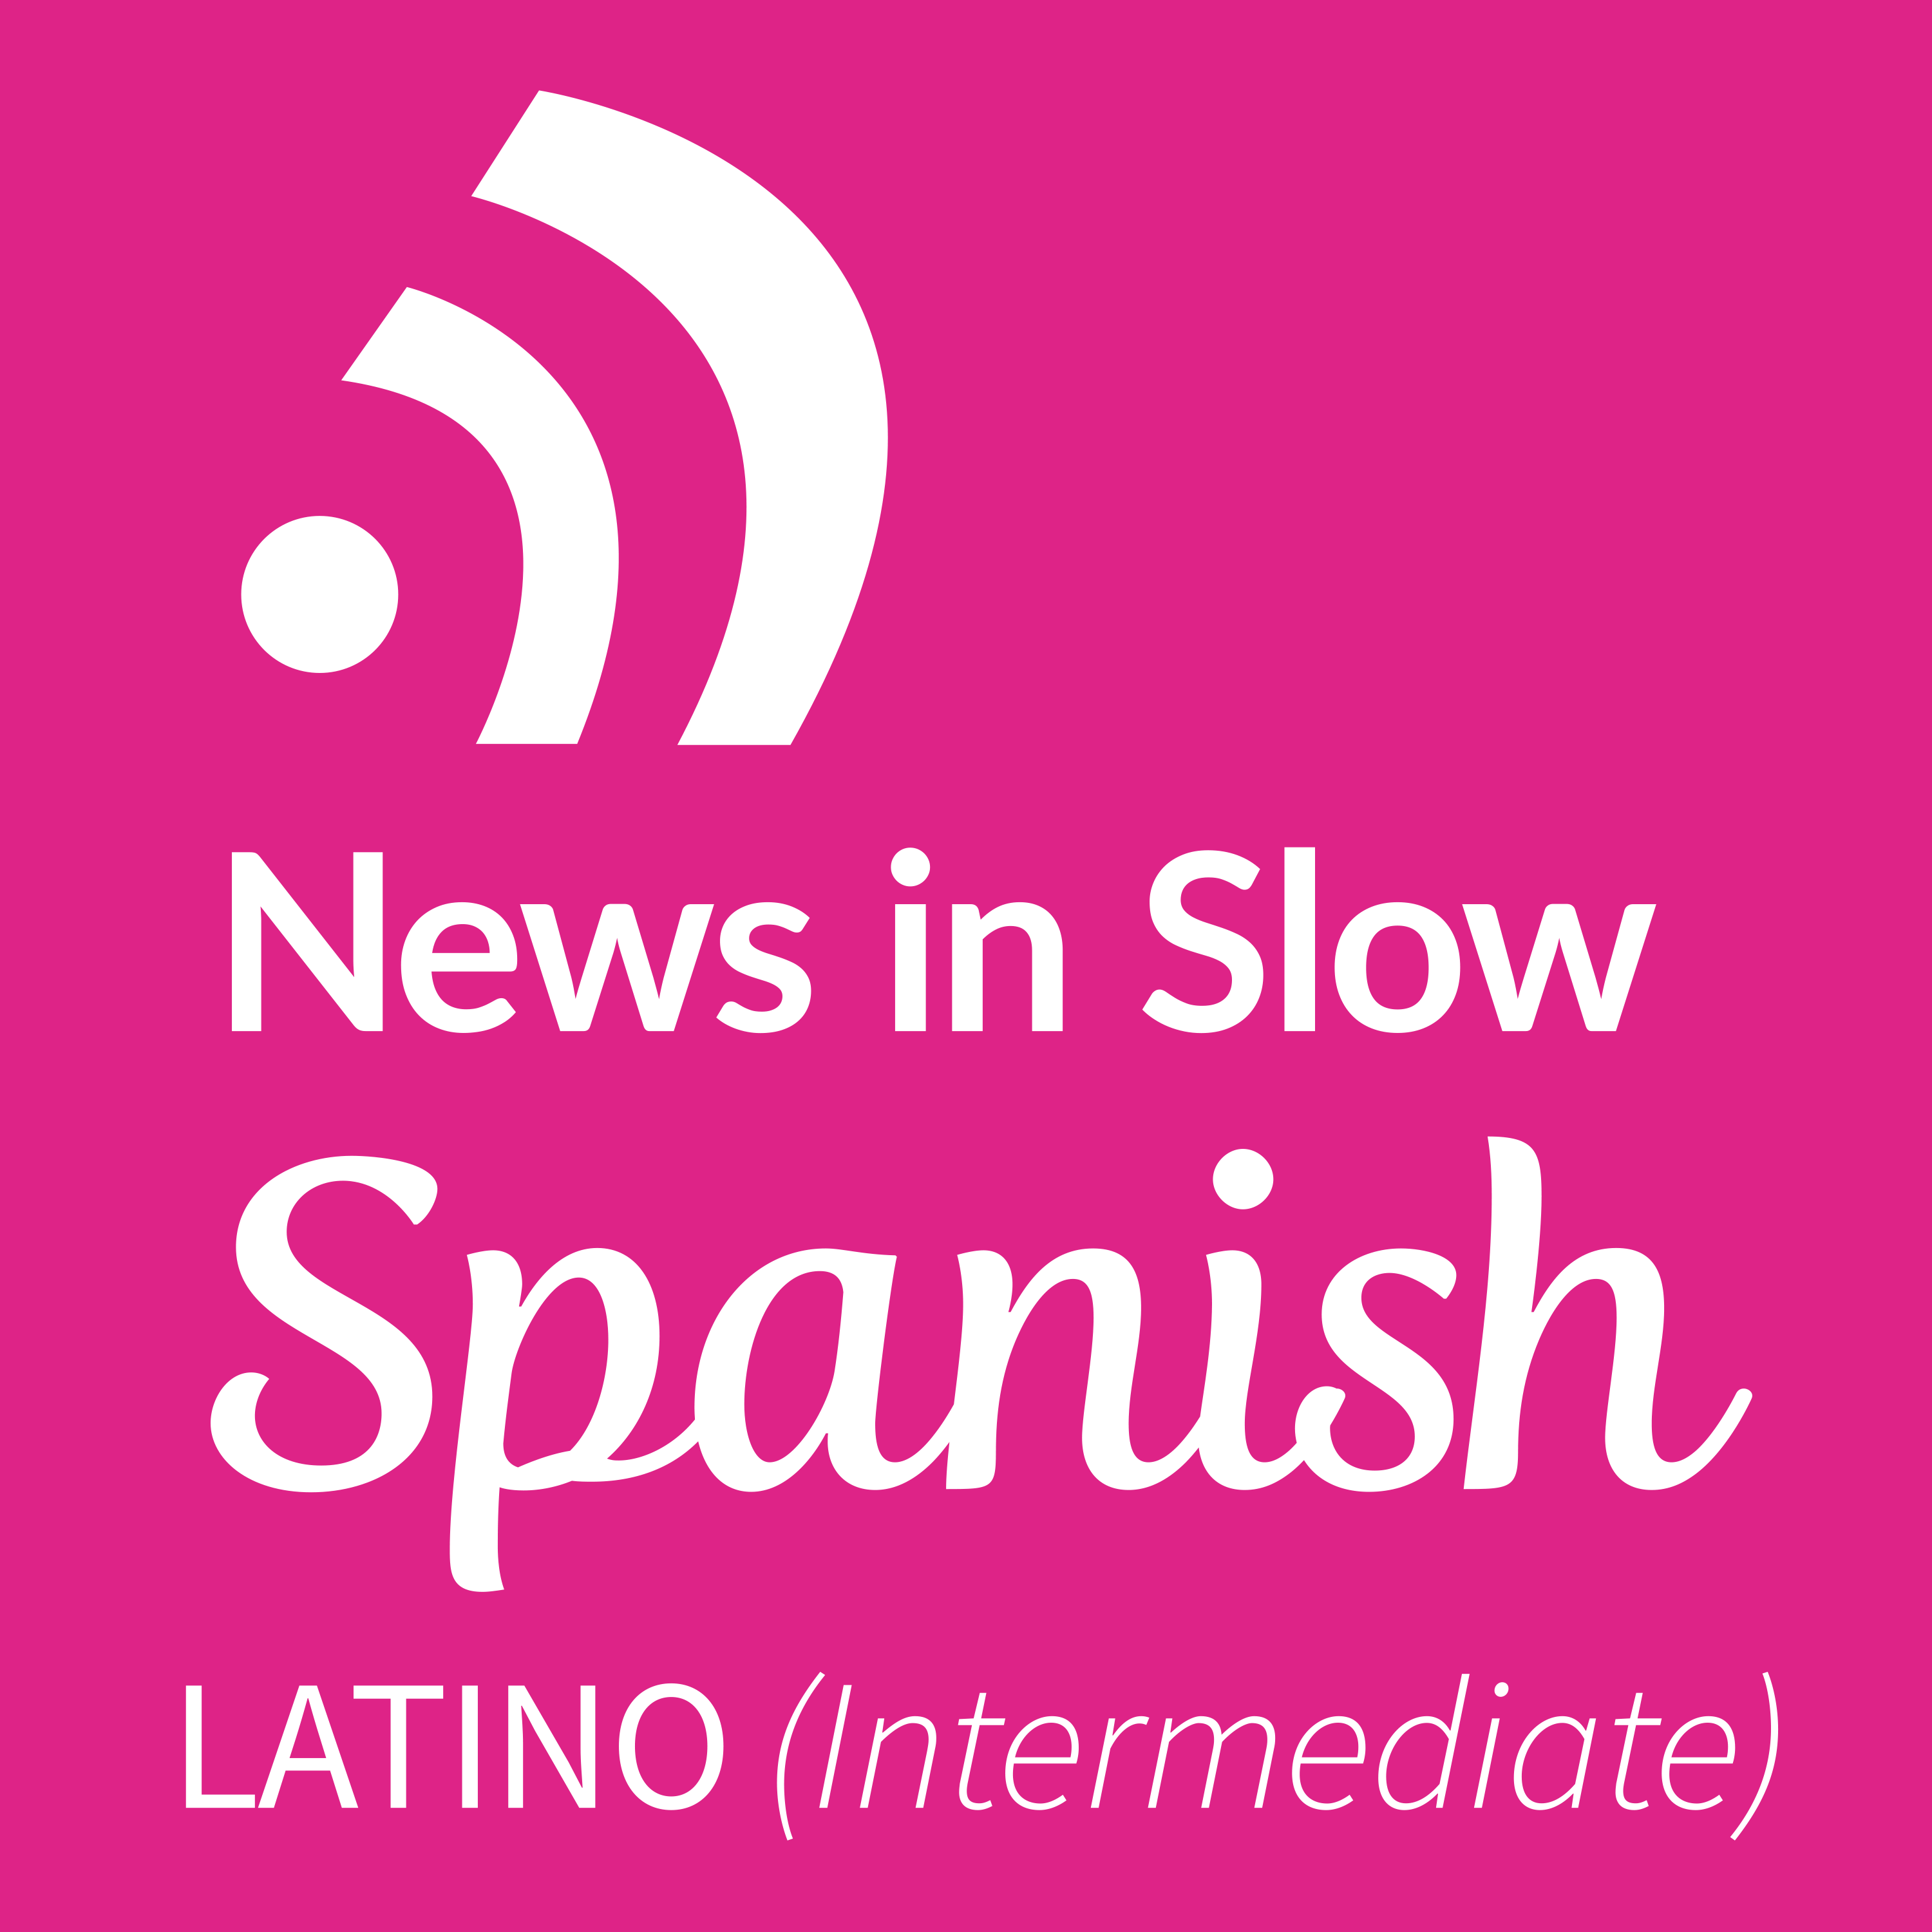 News in Slow Spanish Latino - # 147 - Spanish grammar, news and expressions